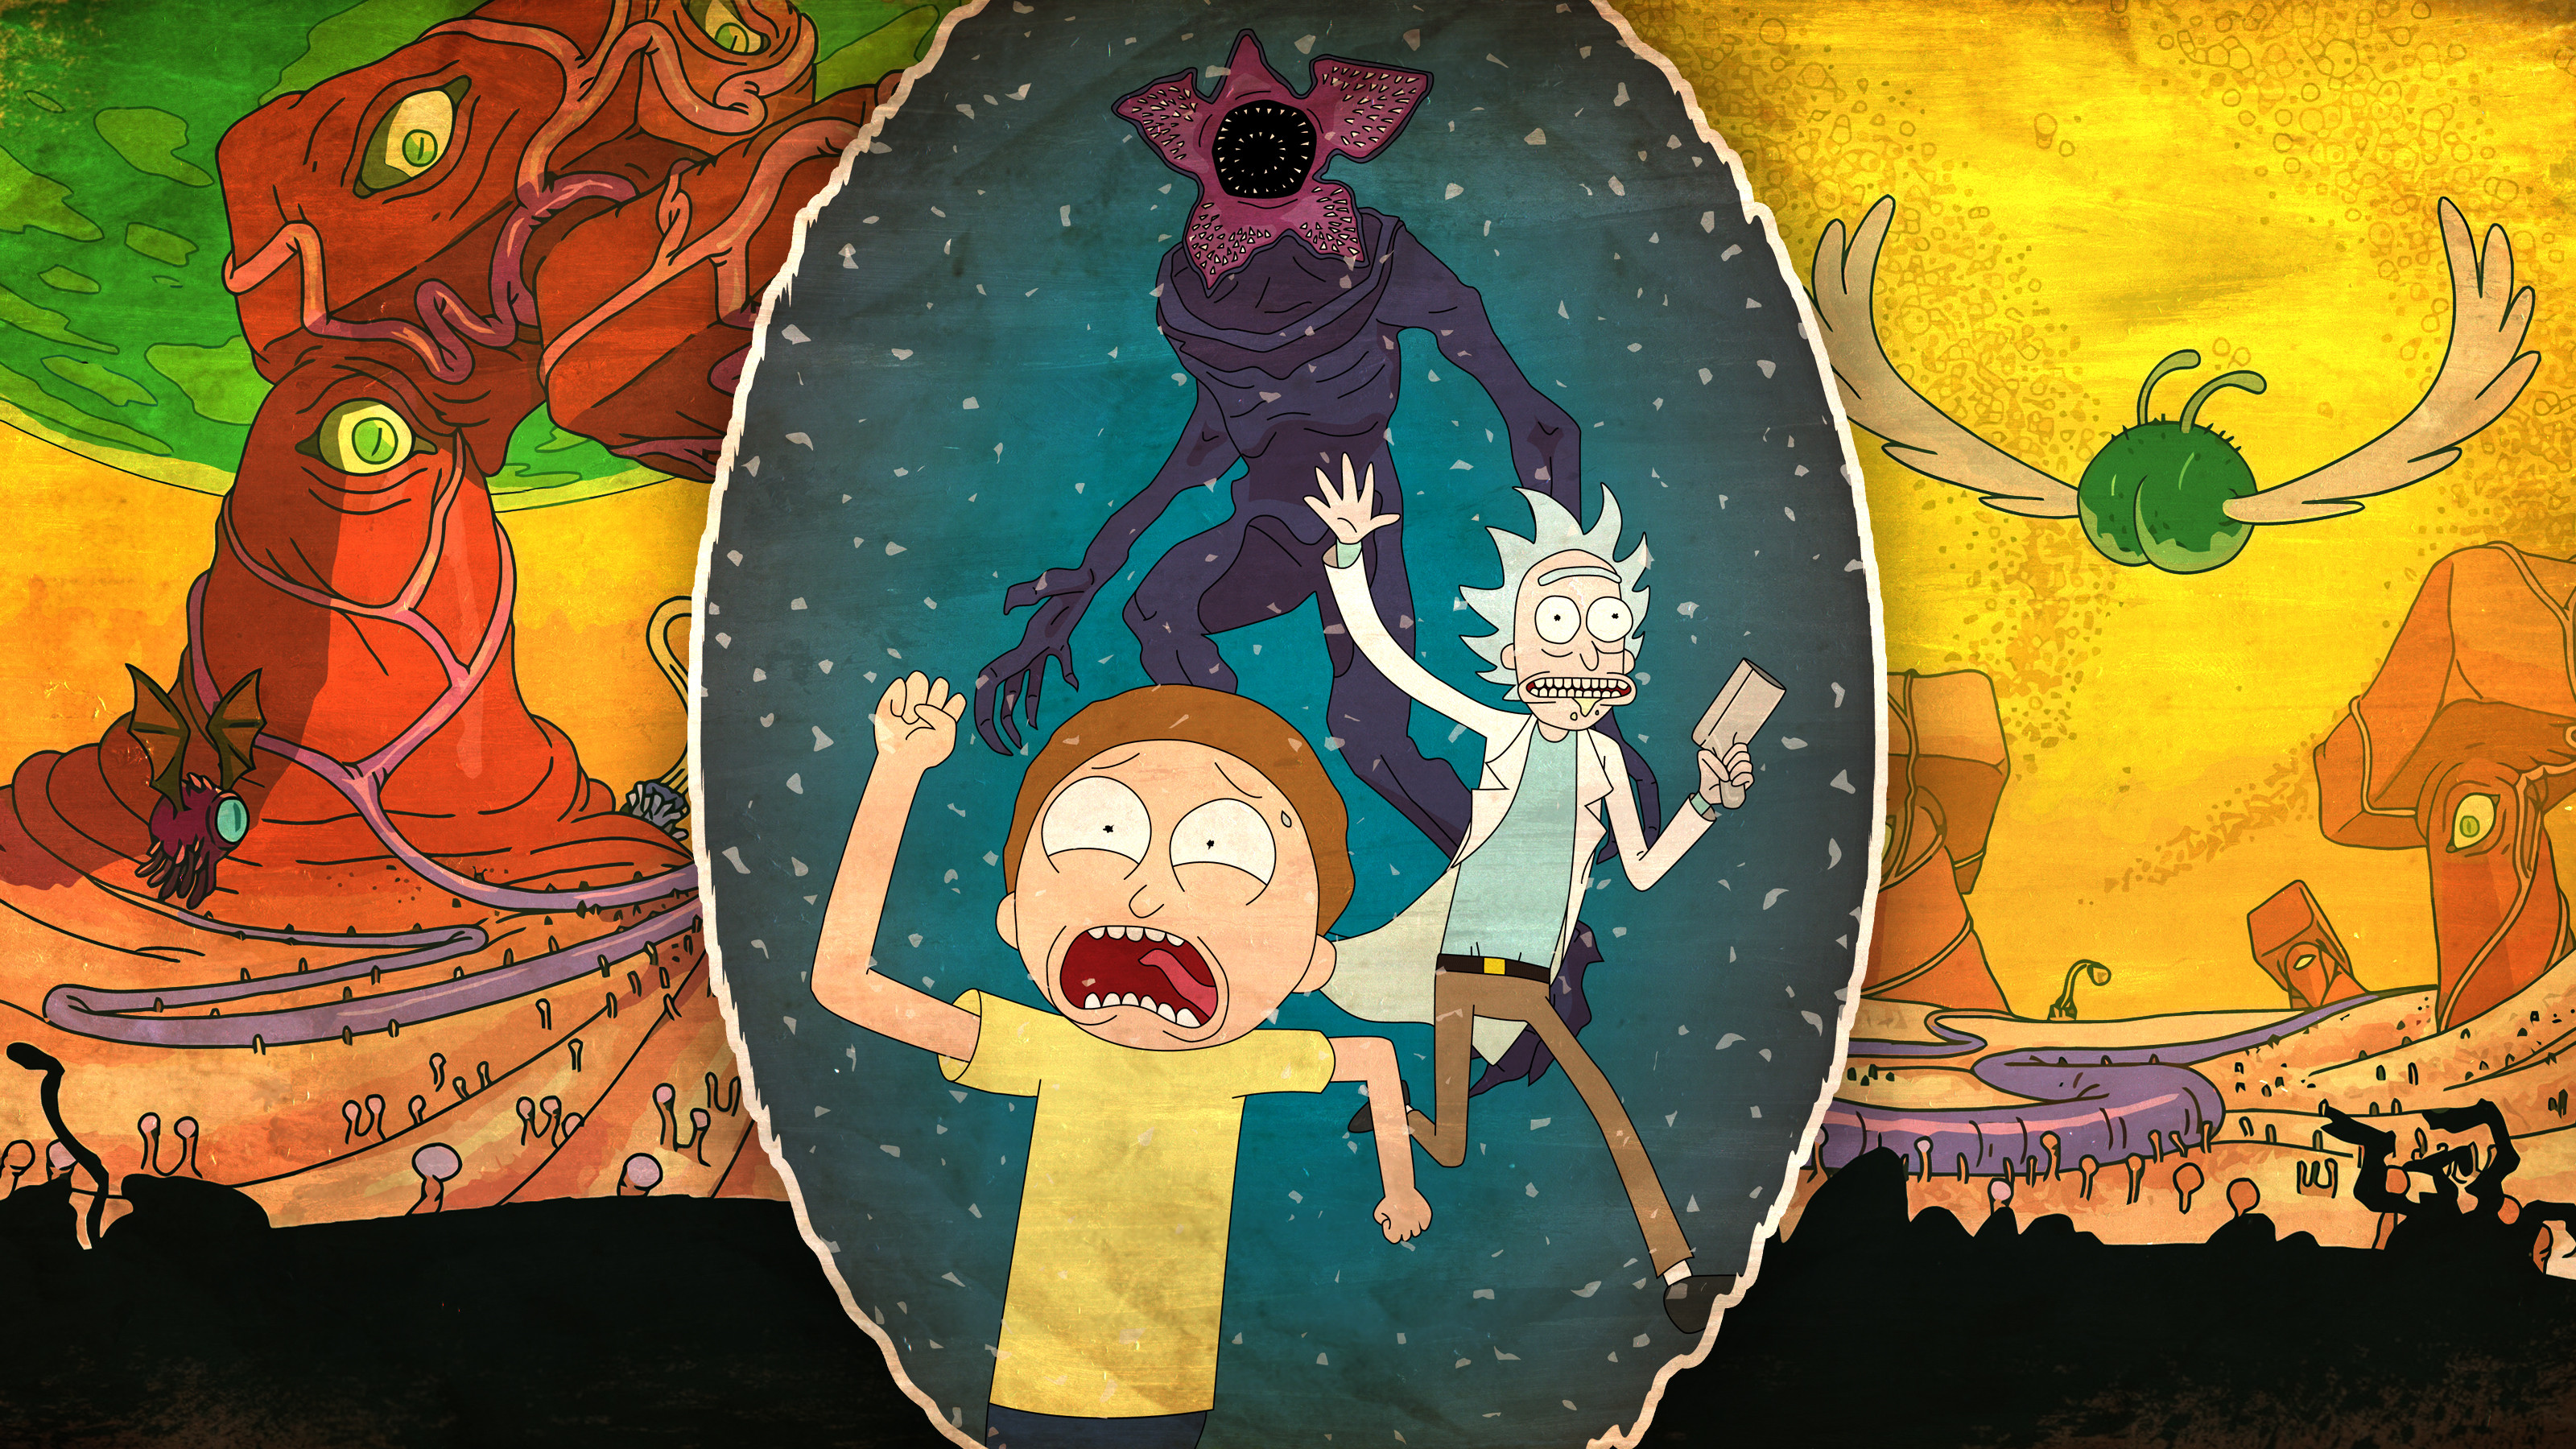 Good Wallpaper High Quality Rick And Morty - rick-and-morty-4k-zp  Best Photo Reference_84171.jpg